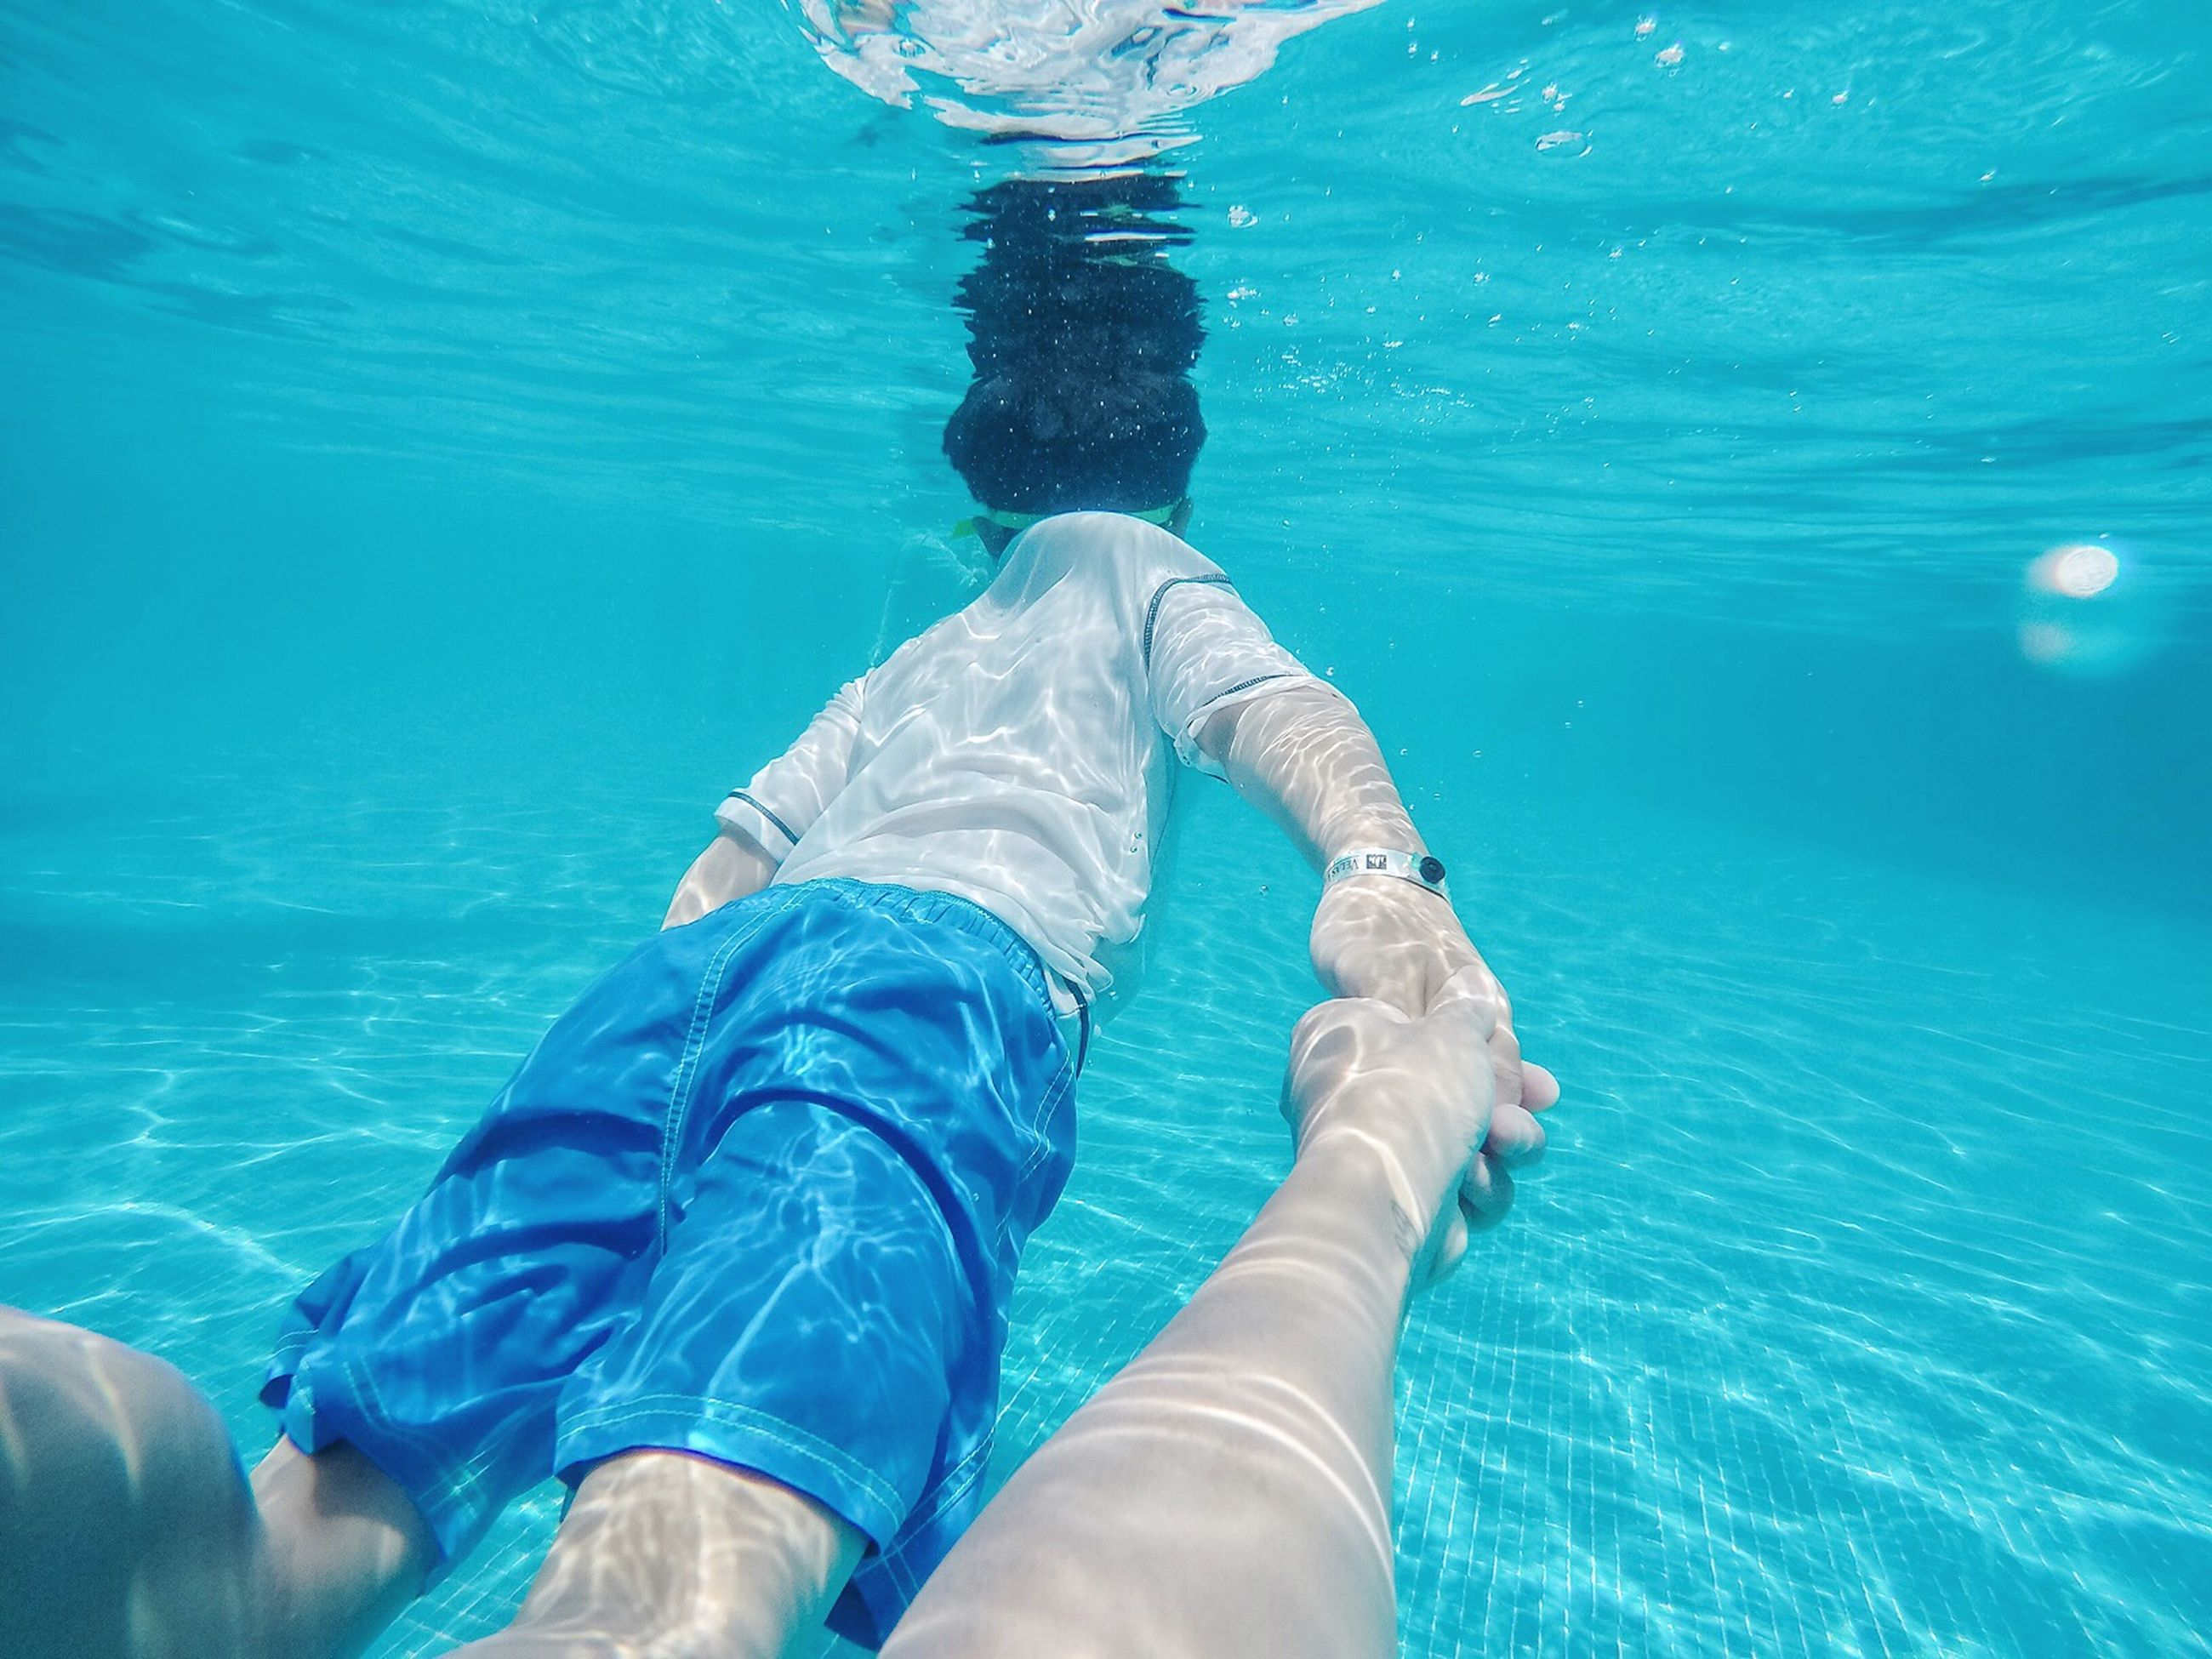 water, blue, low section, swimming, person, underwater, swimming pool, leisure activity, lifestyles, sea, men, personal perspective, turquoise colored, high angle view, rippled, animal themes, unrecognizable person